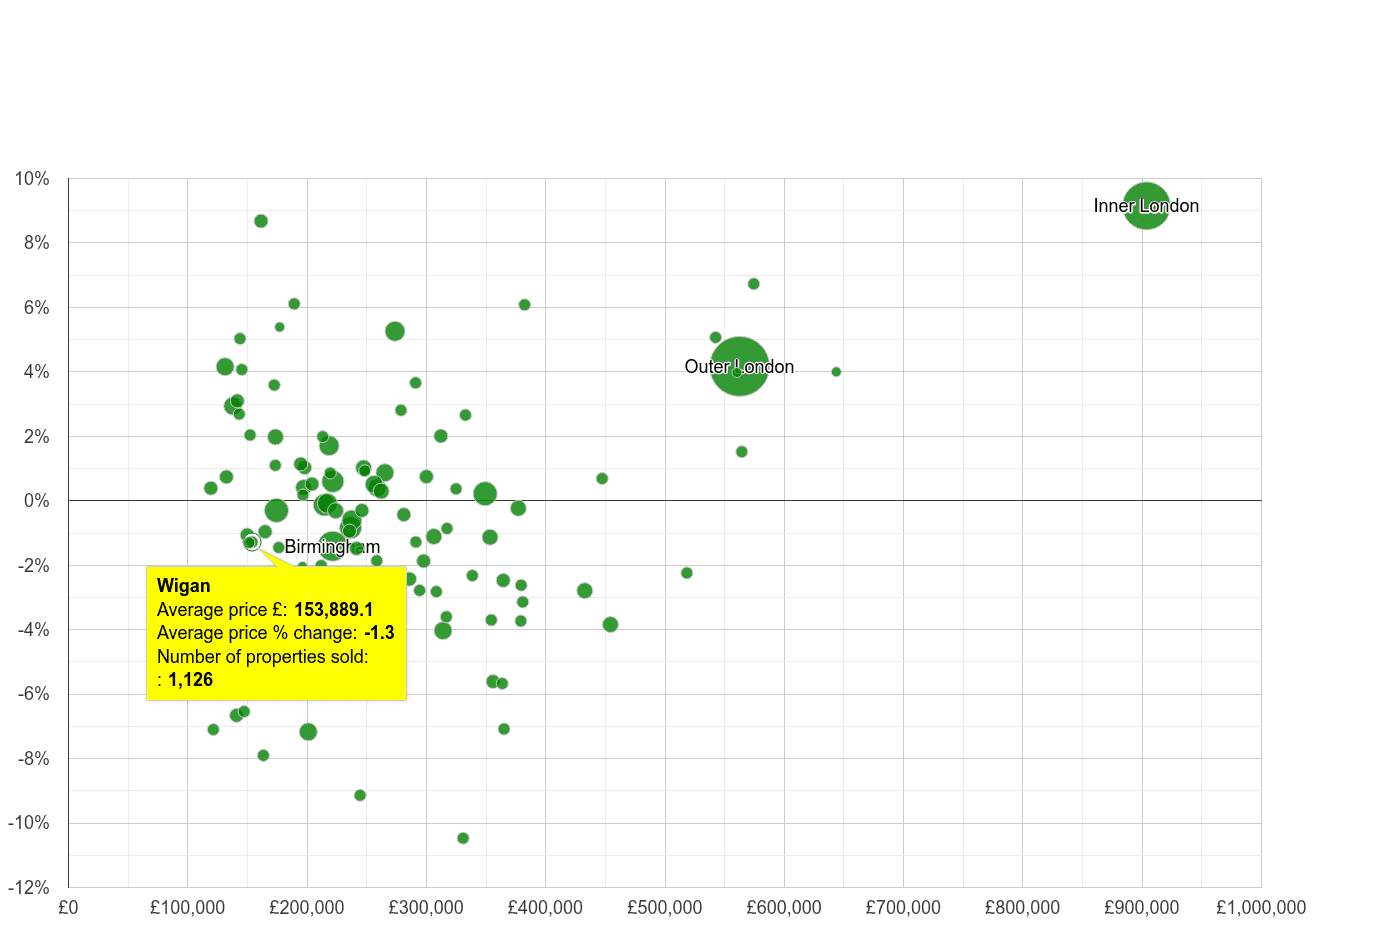 Wigan house prices compared to other cities